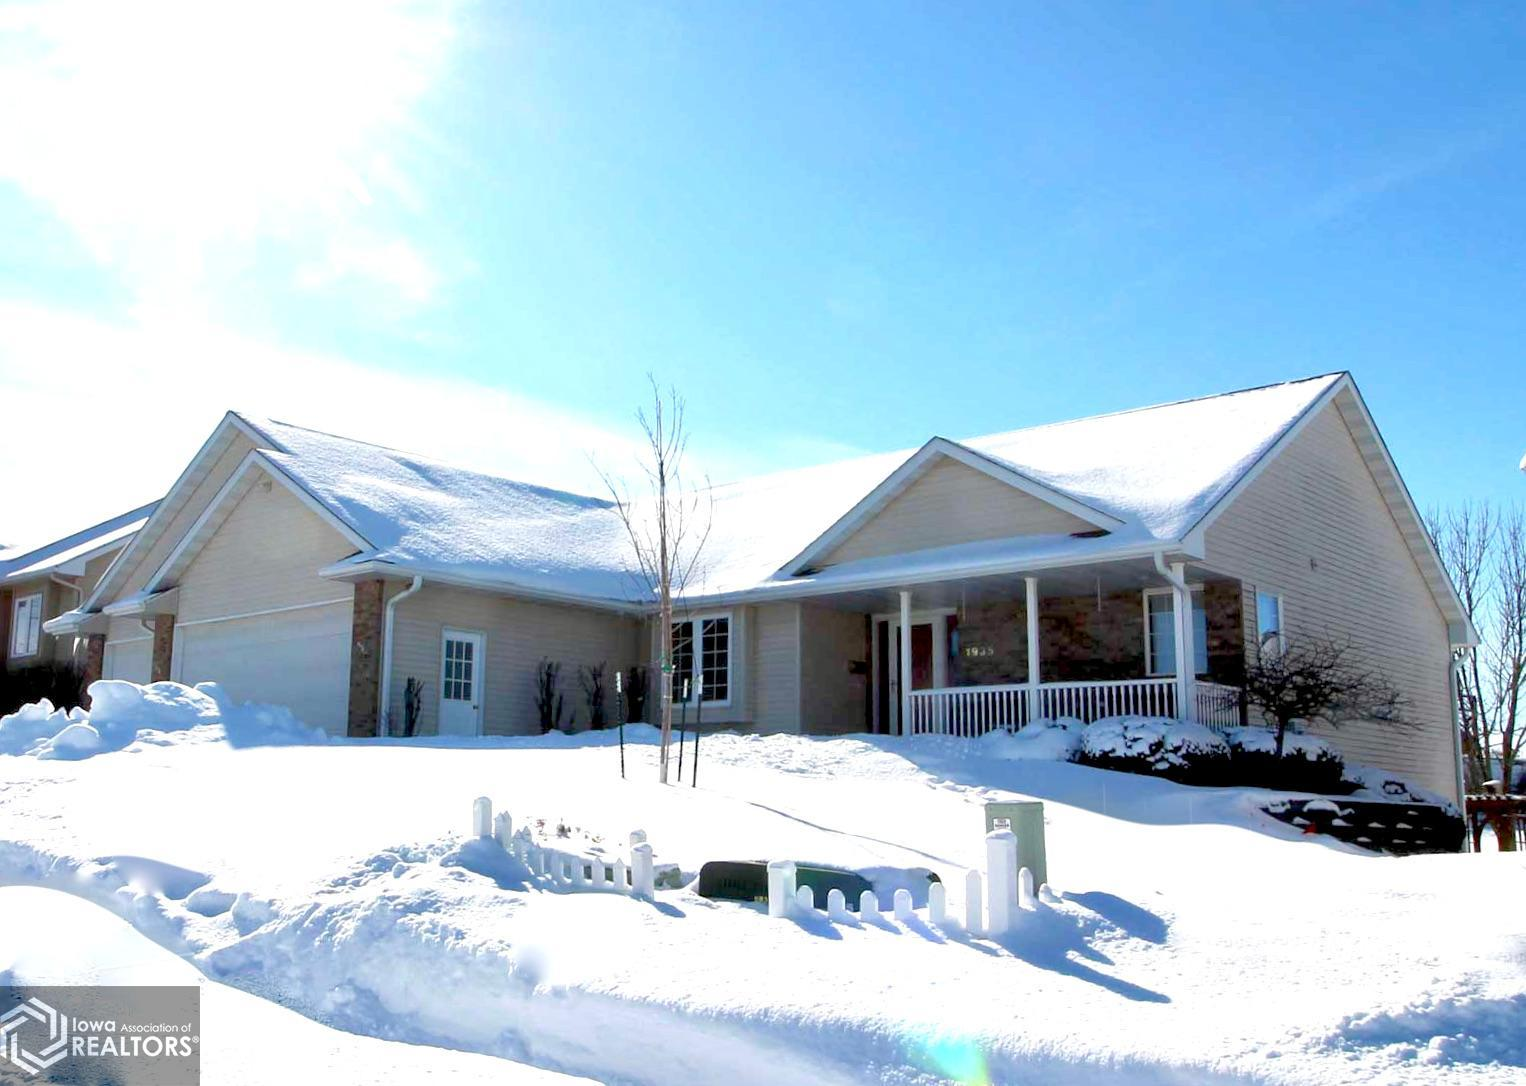 1935 Reed, Grinnell, Iowa 50112-1058, 4 Bedrooms Bedrooms, ,3 BathroomsBathrooms,Single Family,For Sale,Reed,5712249